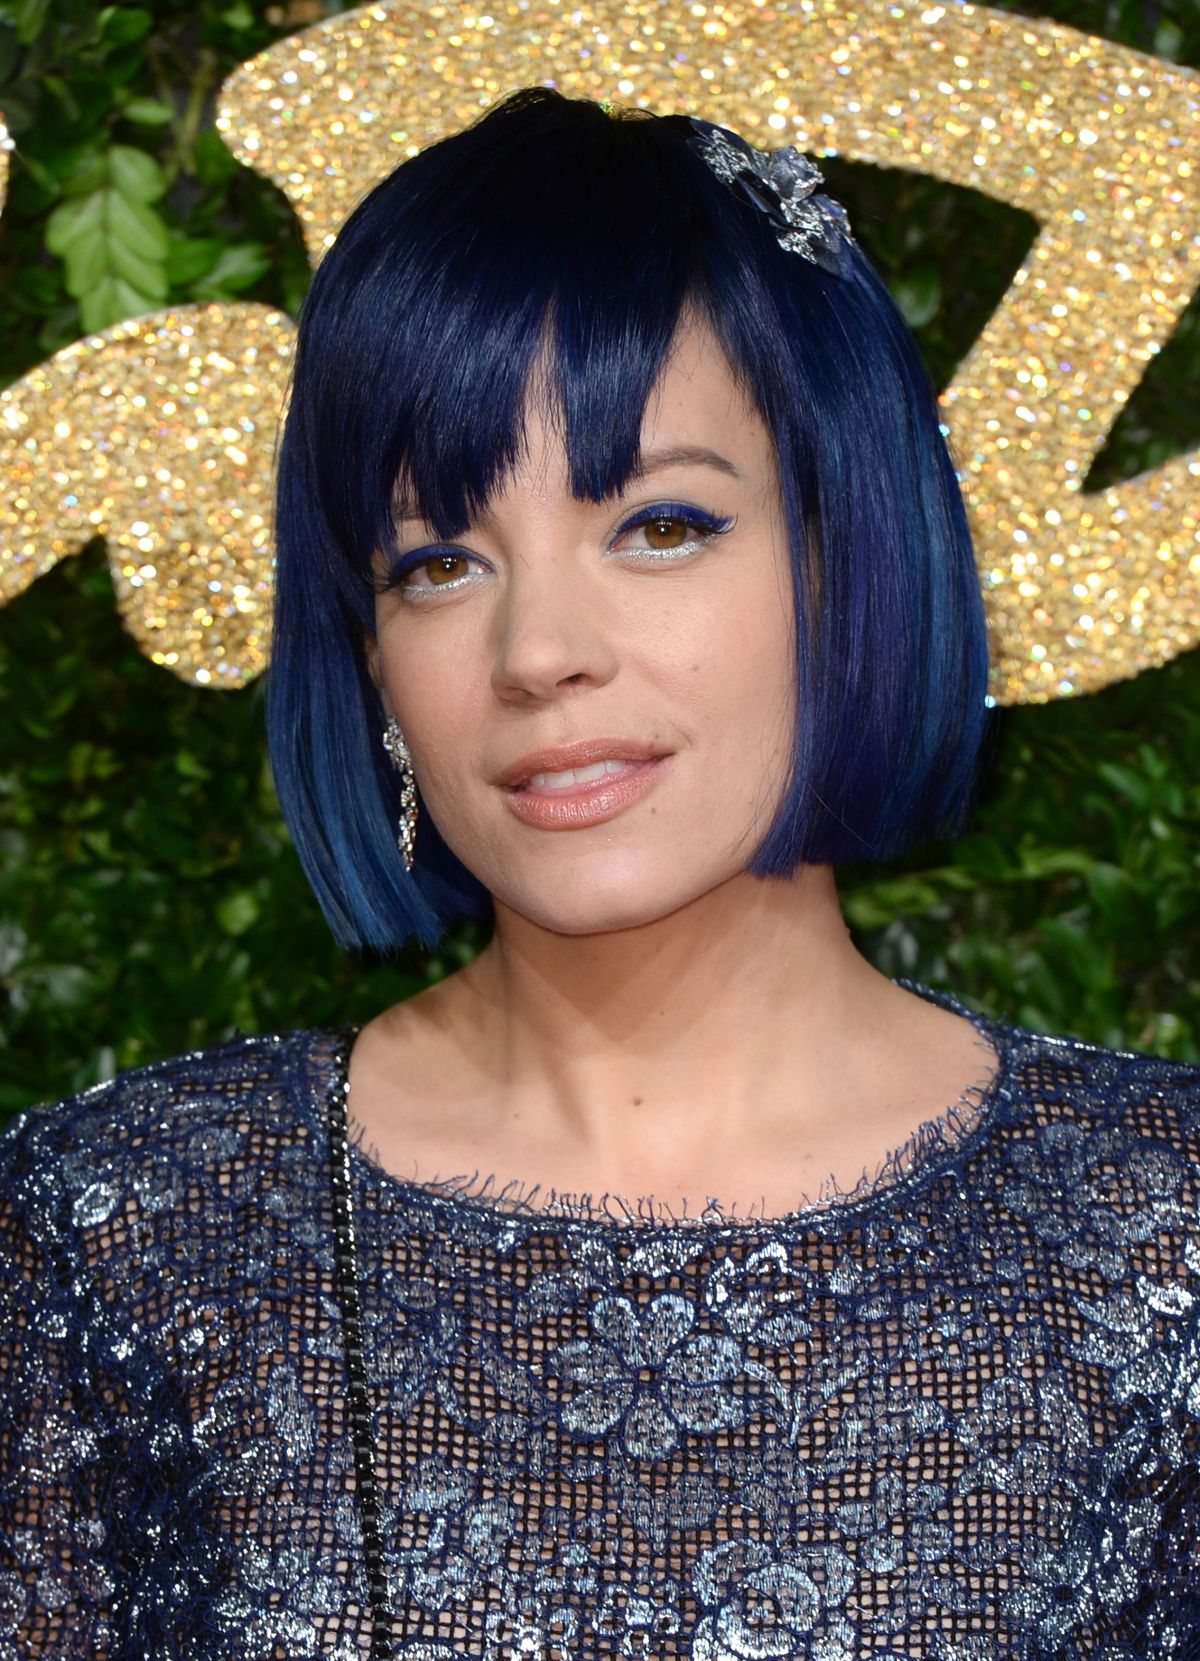 LILY ALLEN at 2015 British Fashion Awards in London 11/23/2015 ...